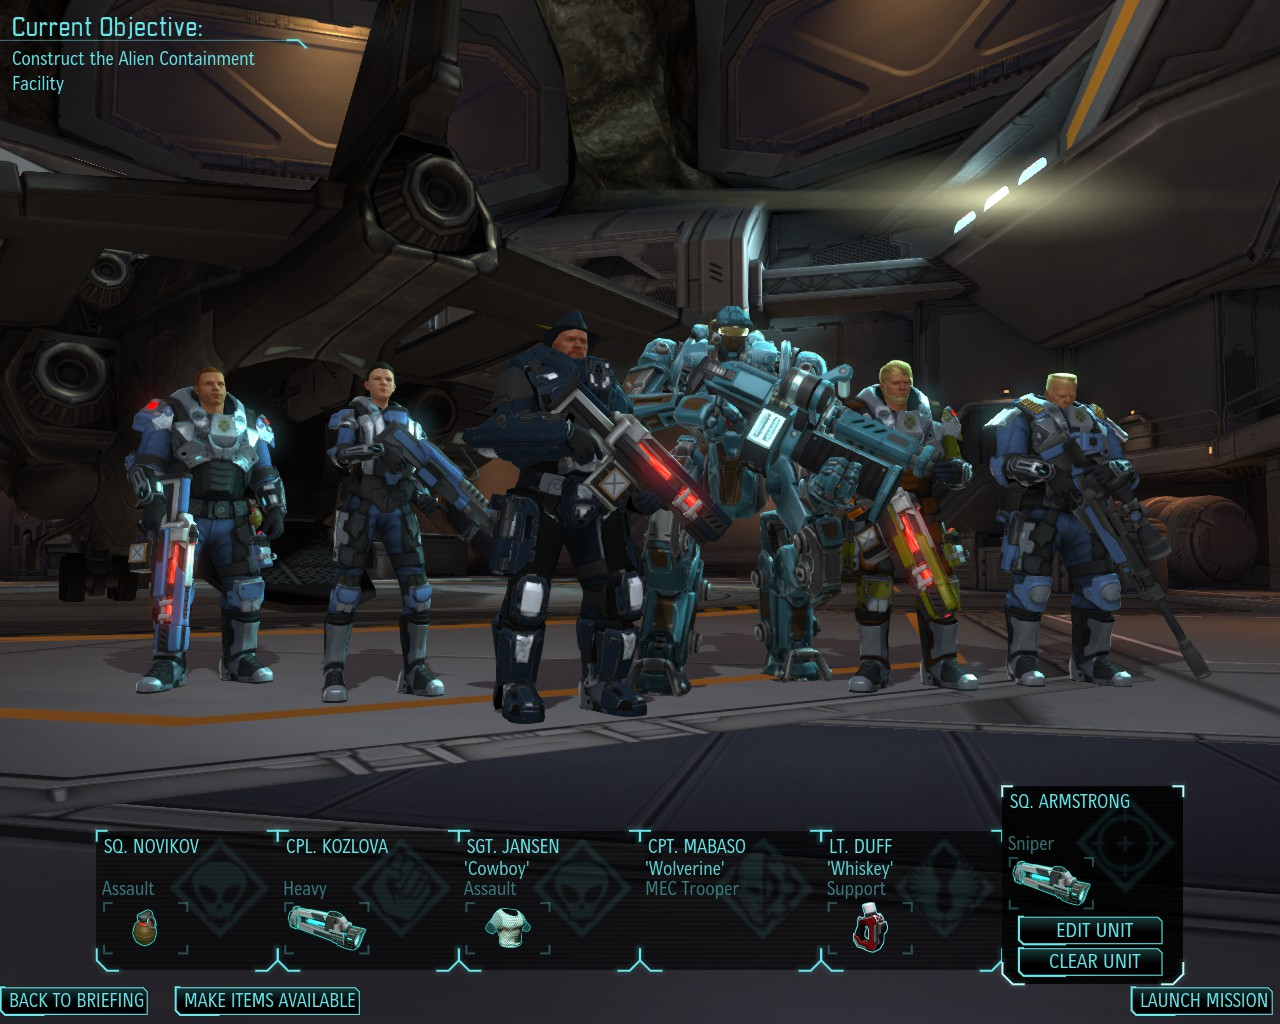 gamasutra: josh bycer's blog - celebrating xcom enemy unknown's design